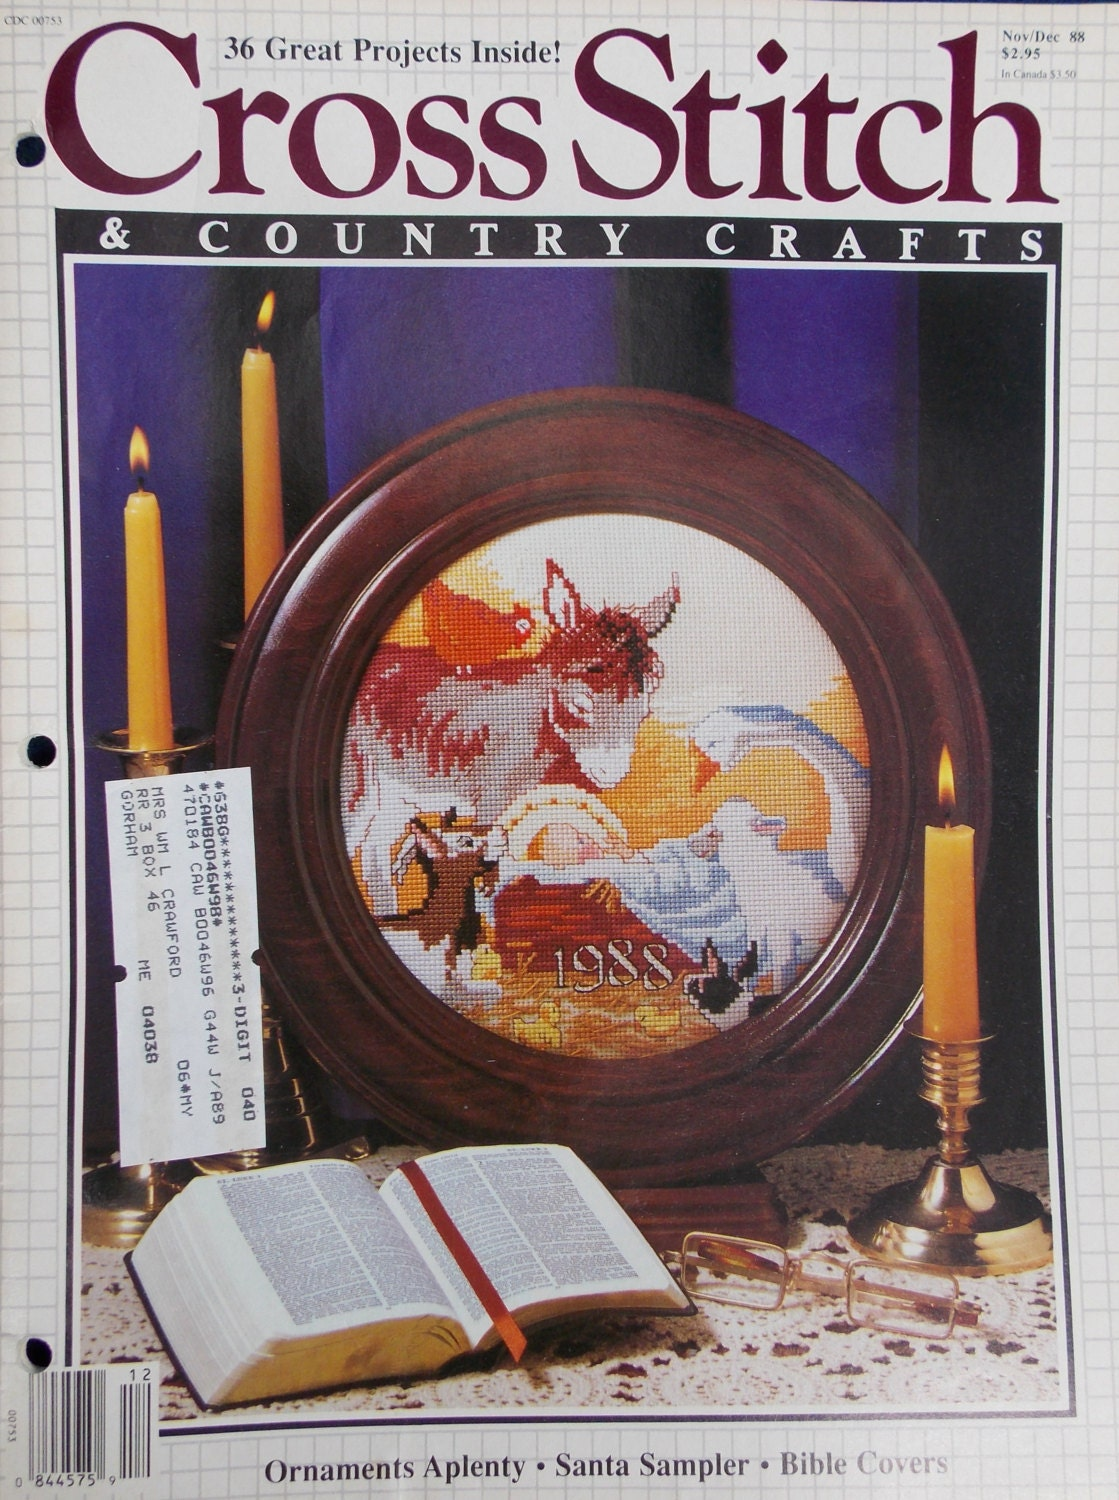 Cross stitch country crafts magazine back issues - 1988 Cross Stitch And Country Crafts Magazine 6 Vintage Issues Sold By Grammiejennie 10 99